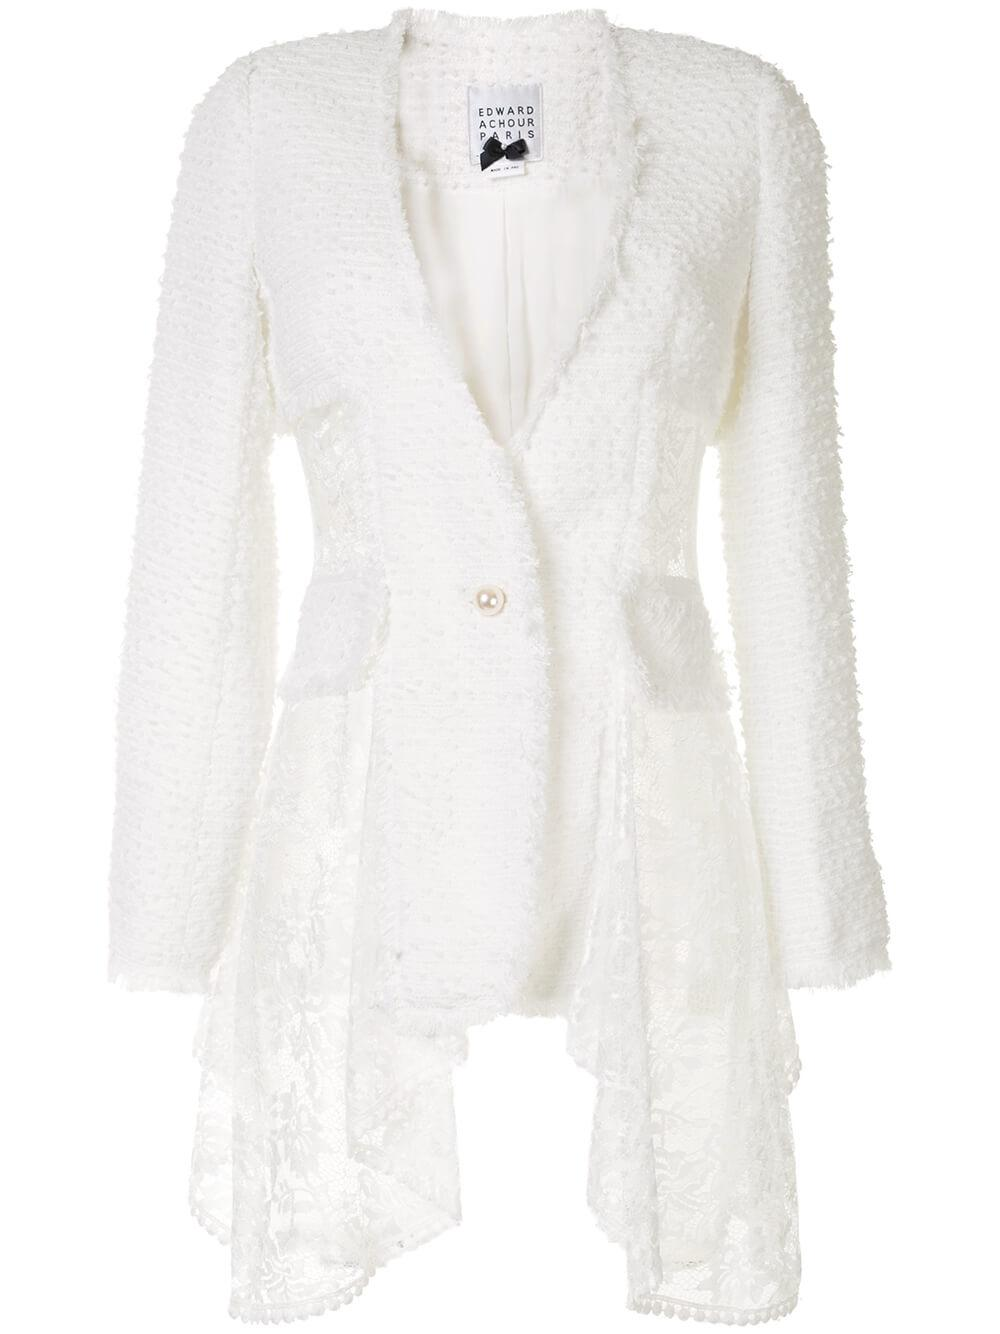 Single Button Jacket With Lace Detailing